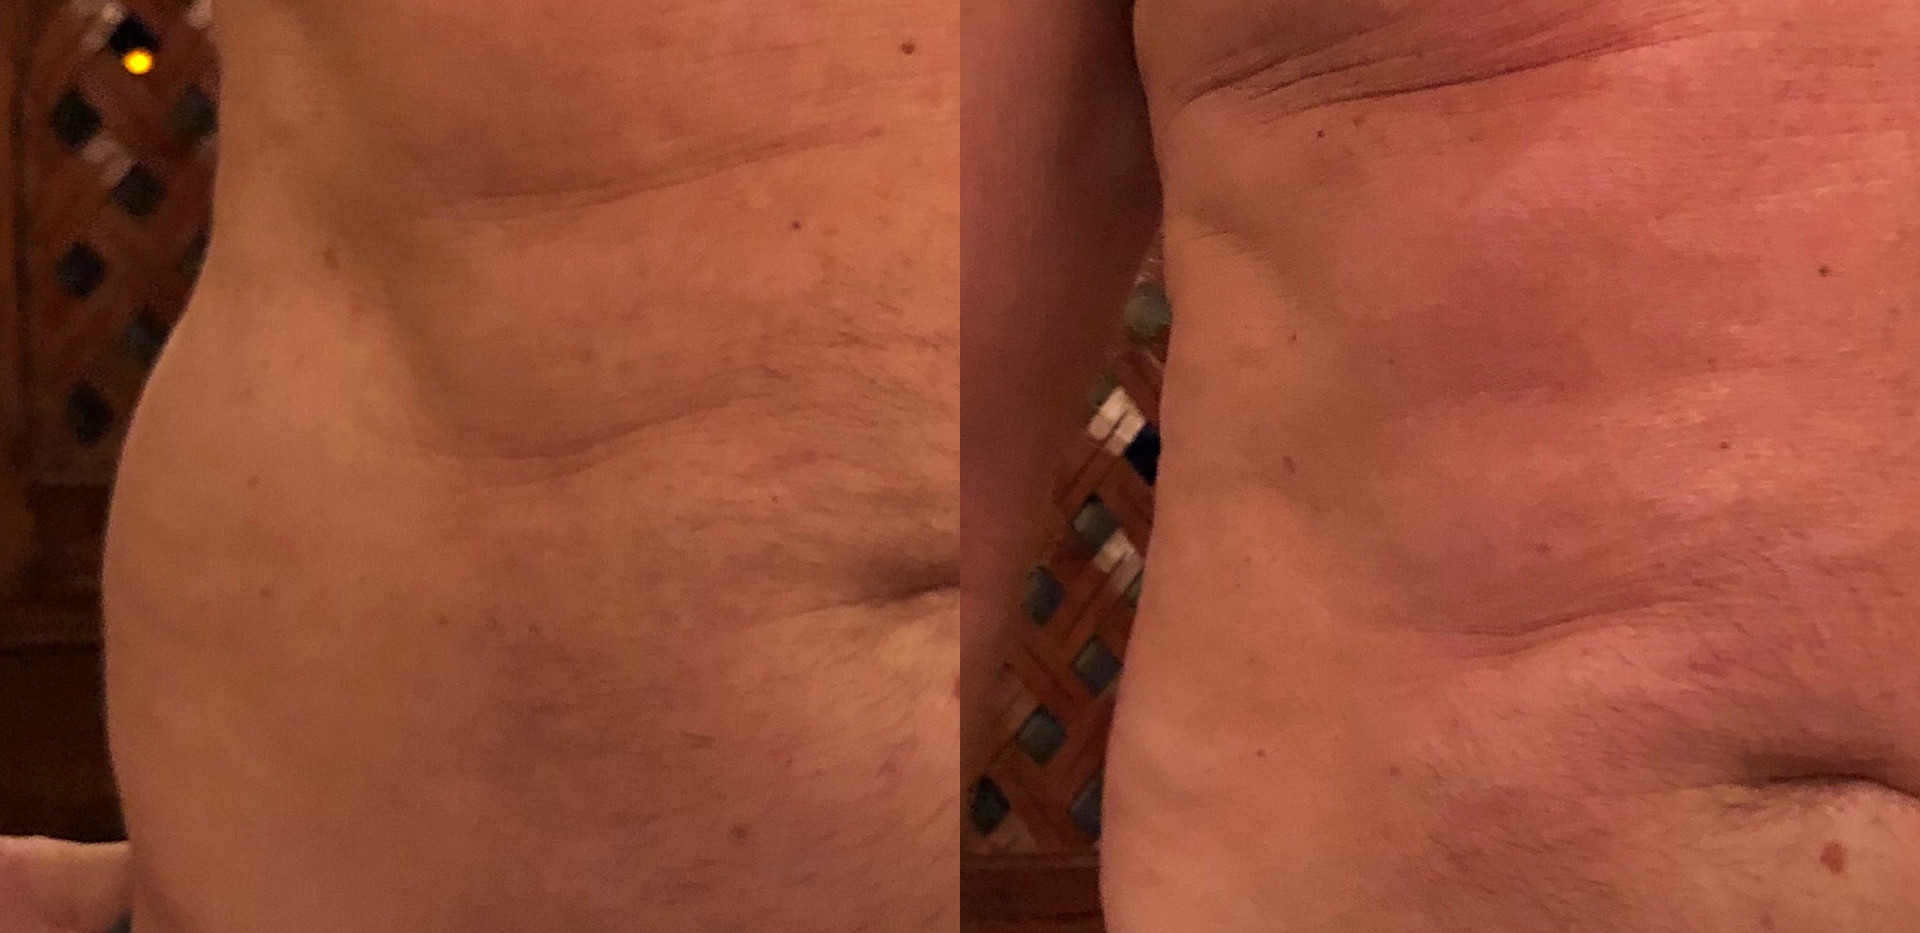 Cryoskin Love Handles- Before & After